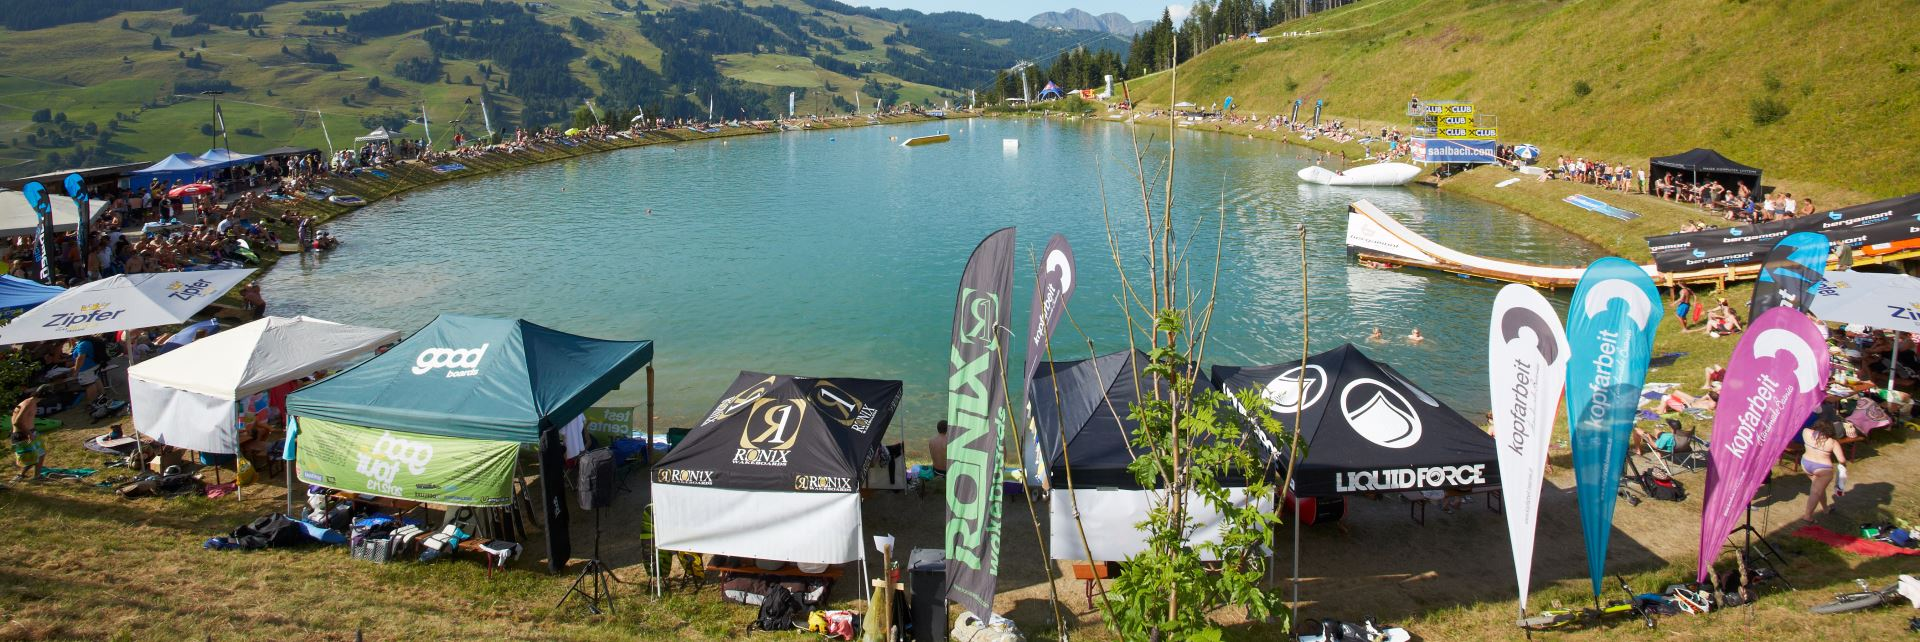 Sommerevents in Saalbach-Hinterglemm